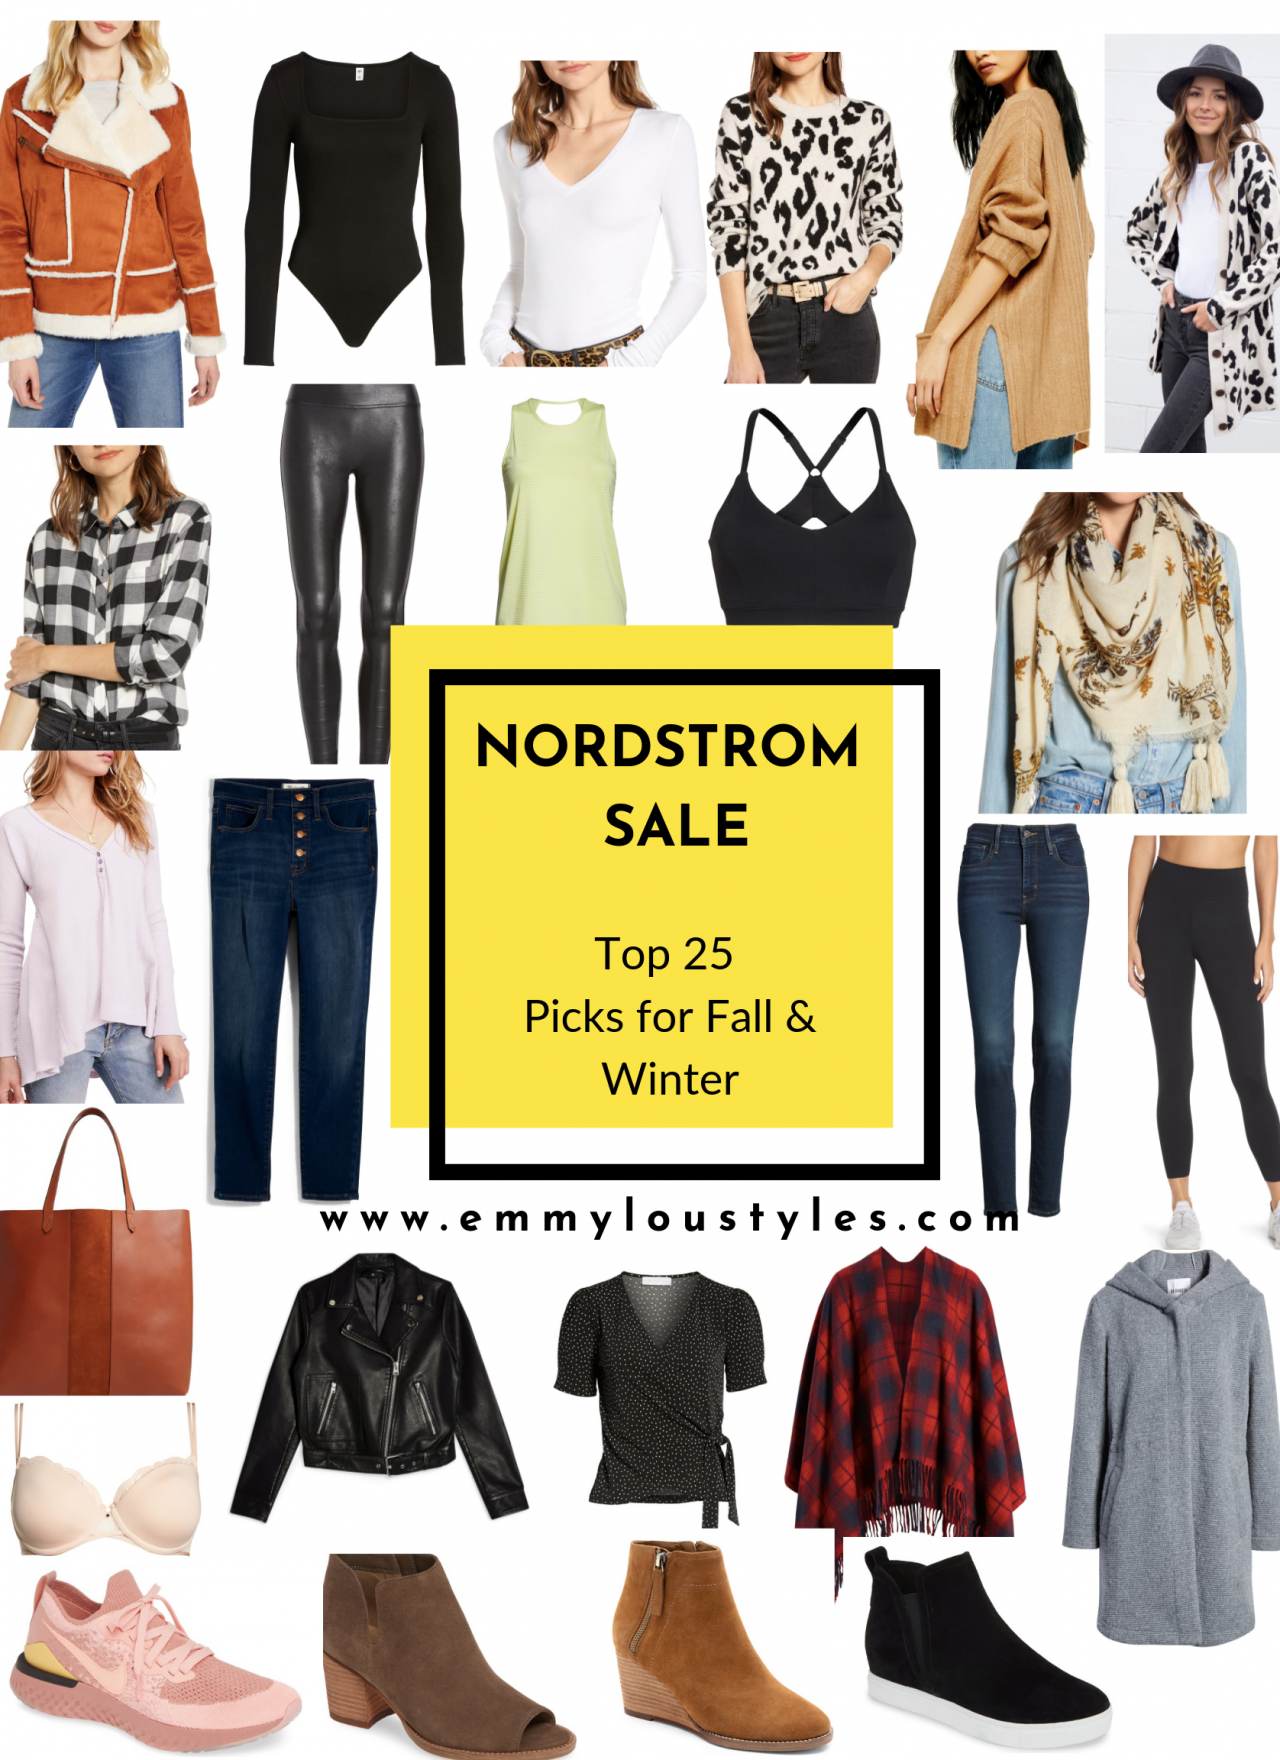 25 of the best fall and winter pieces from Nordstrom